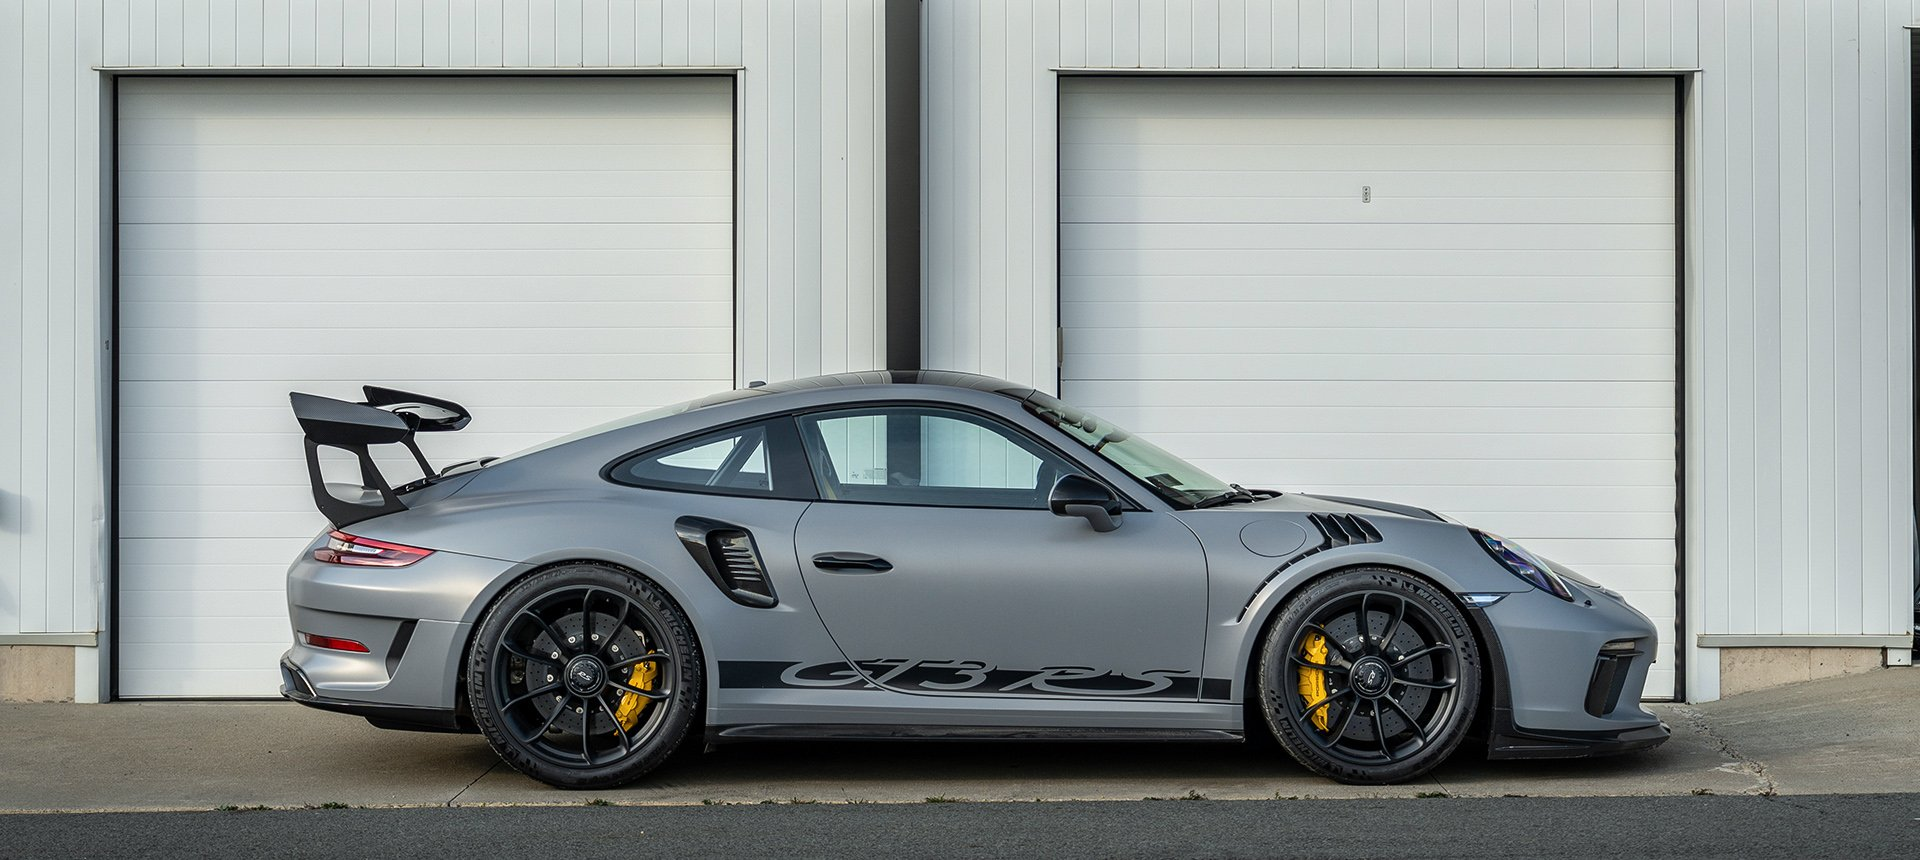 Rockland County Porsche repair and performance | Torrent Motorworks